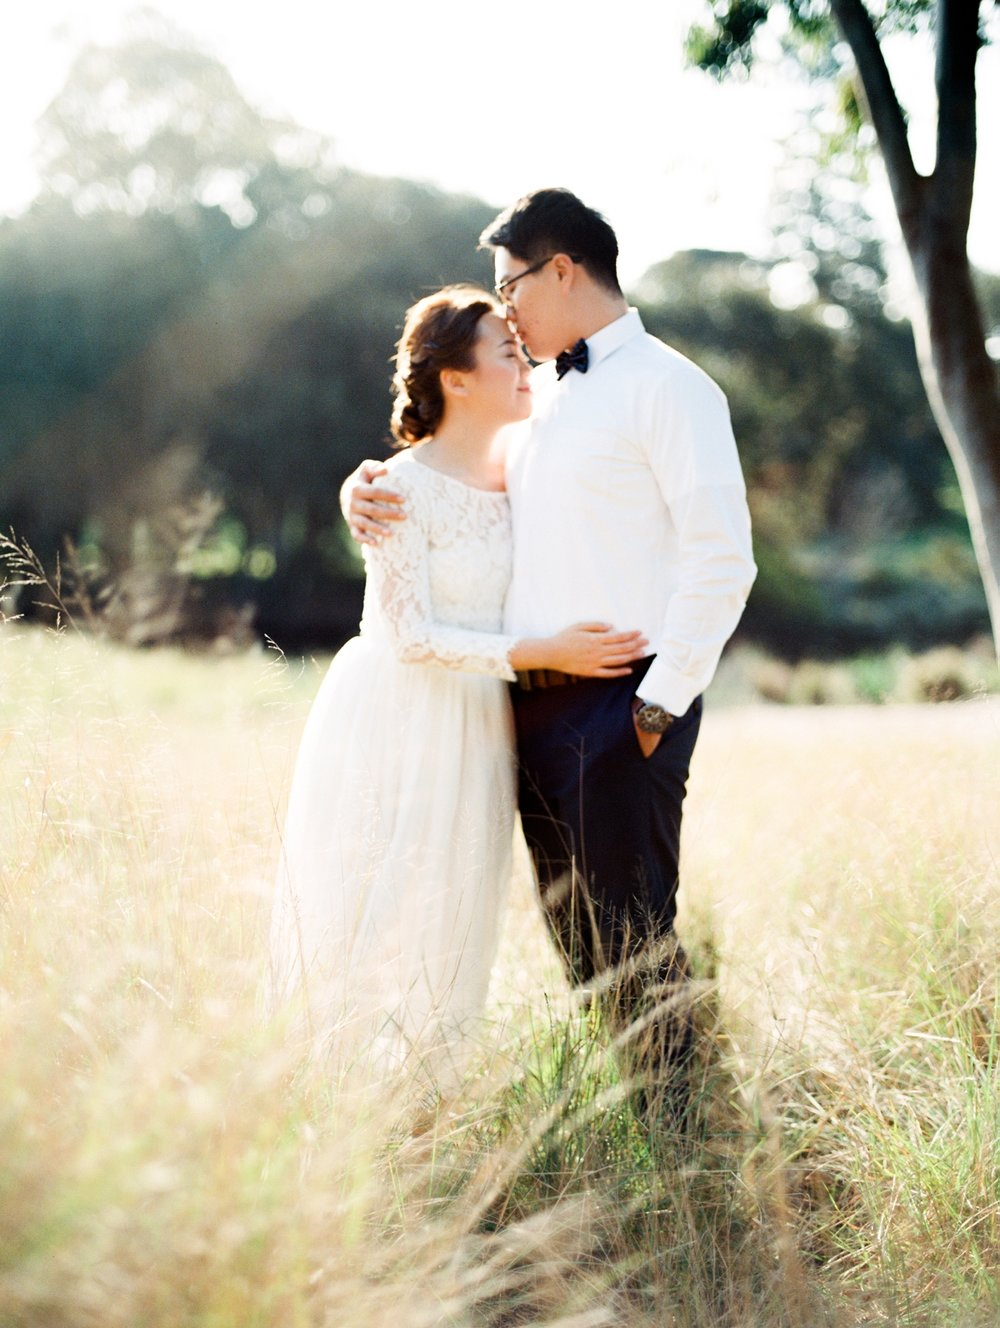 Sydney WEdding Photographer Mr Edwards engagement Session_2210.jpg